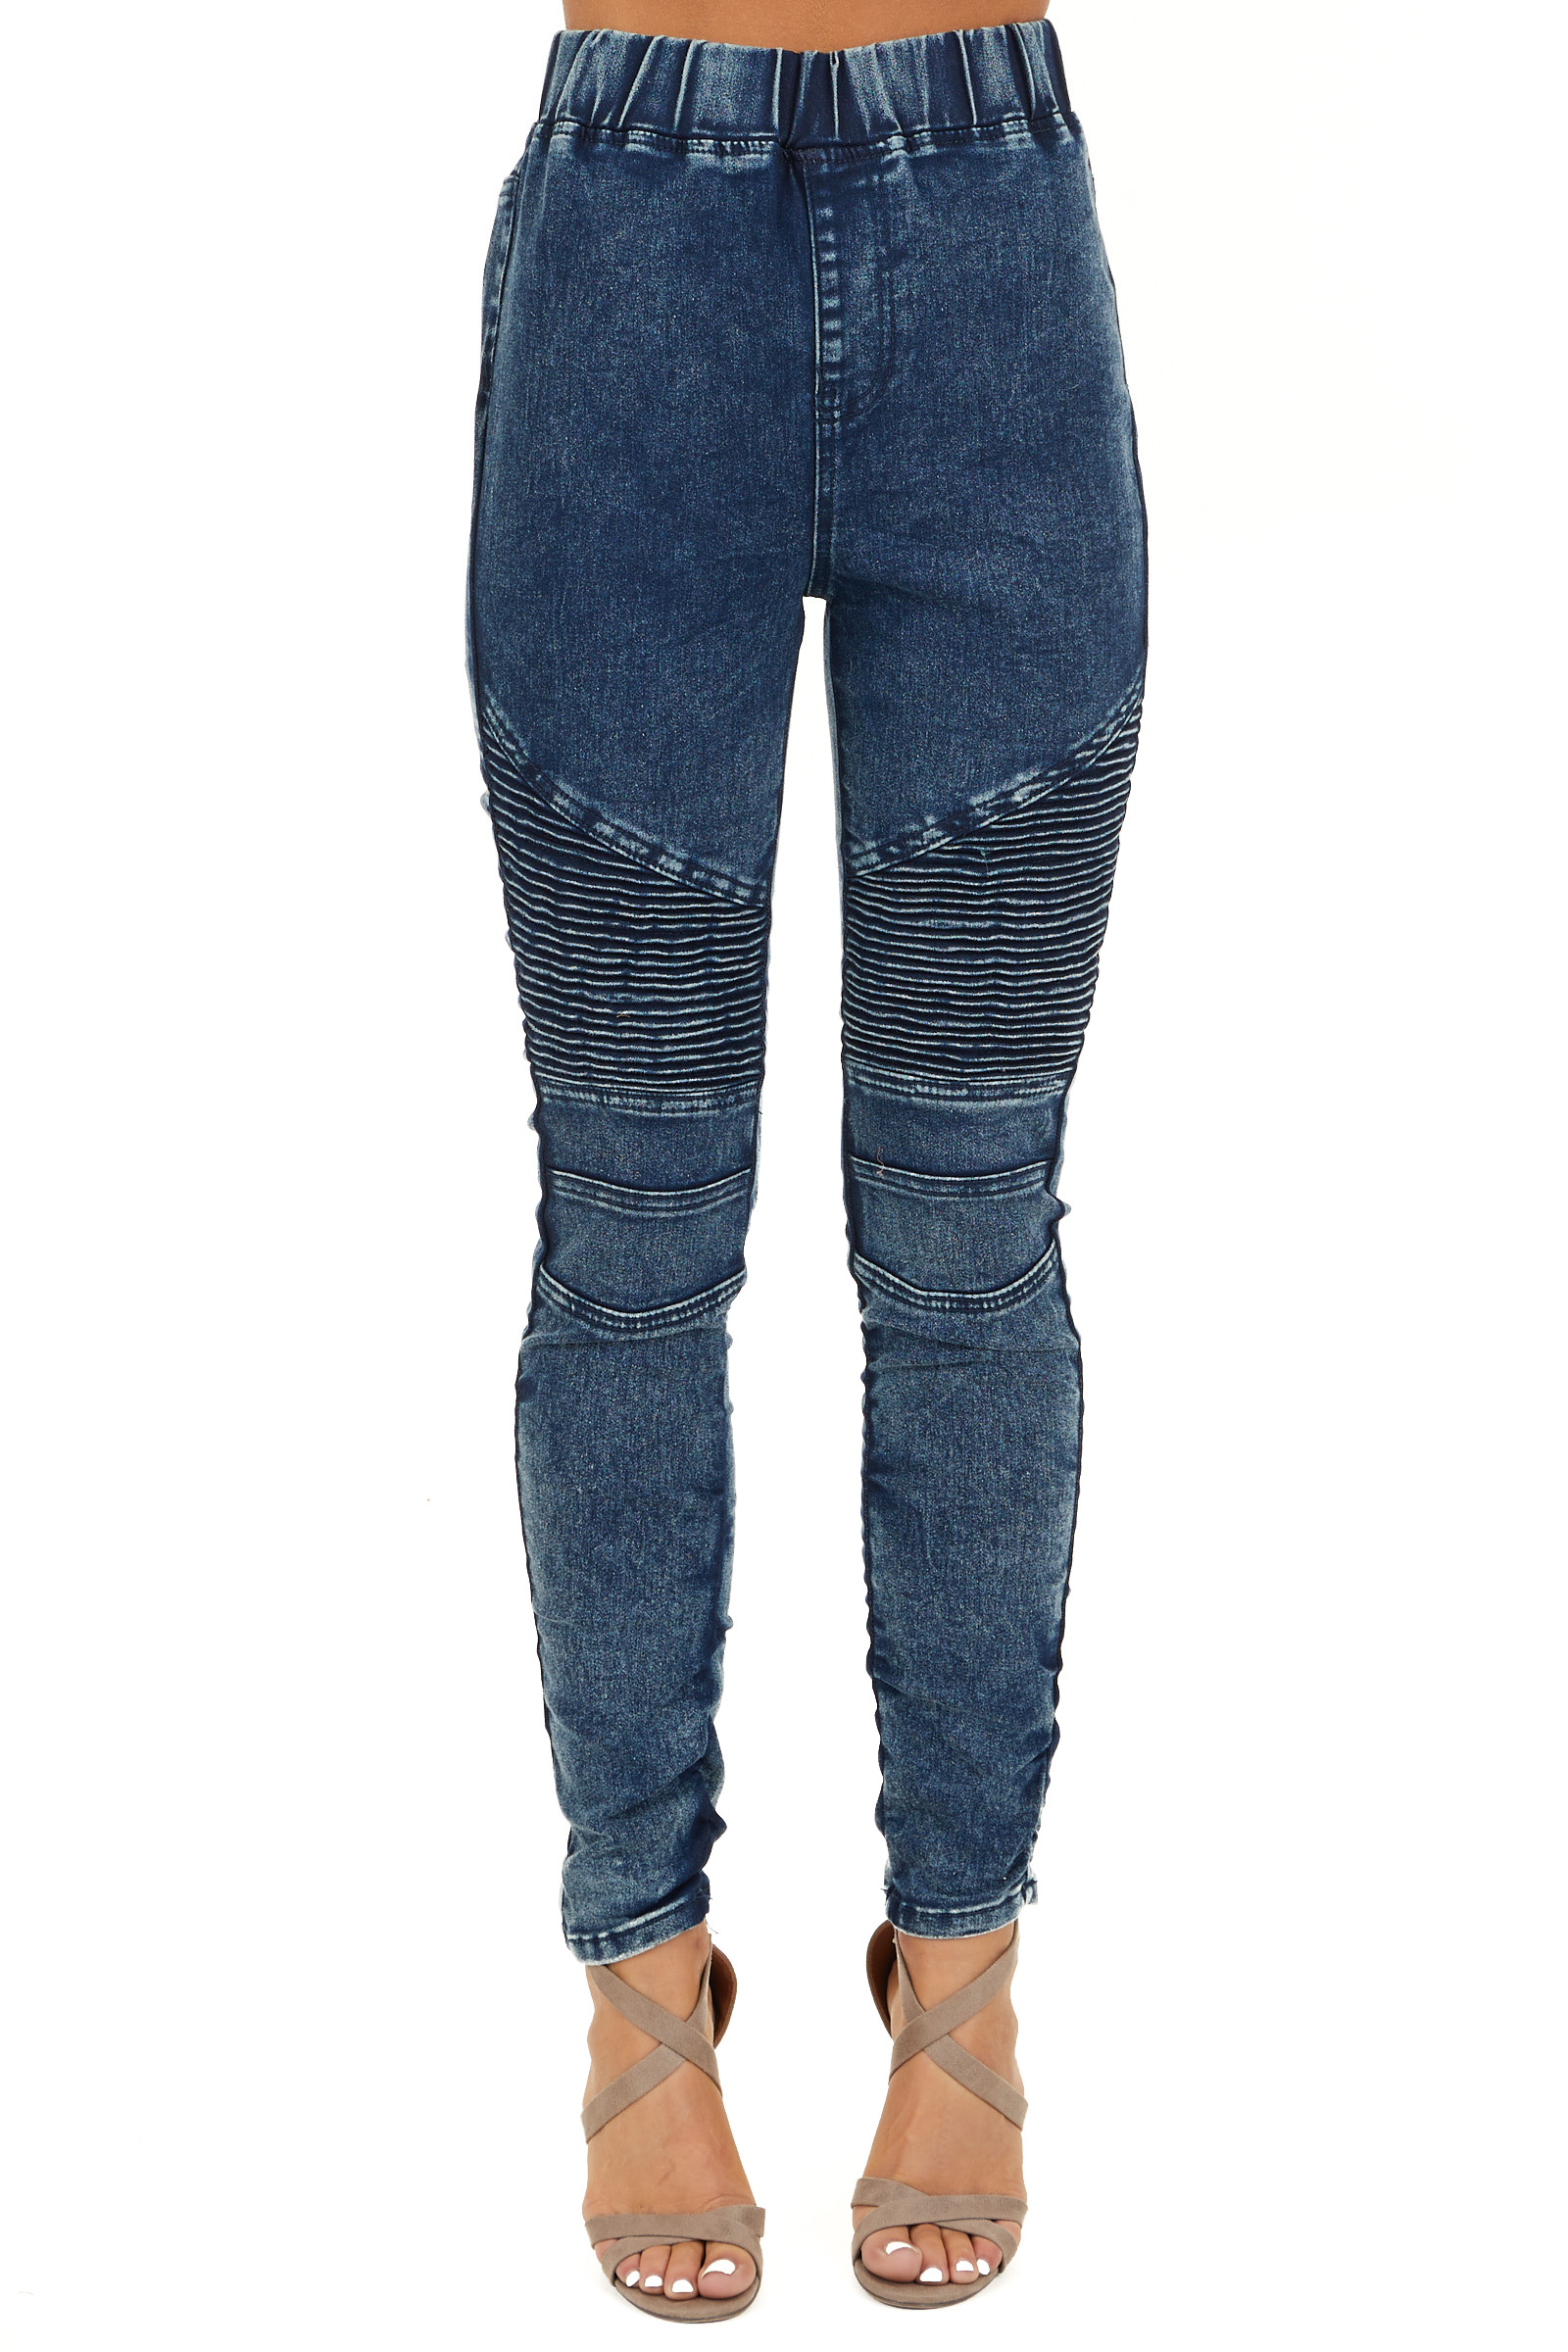 Washed Denim Blue Skinny Moto Leggings front